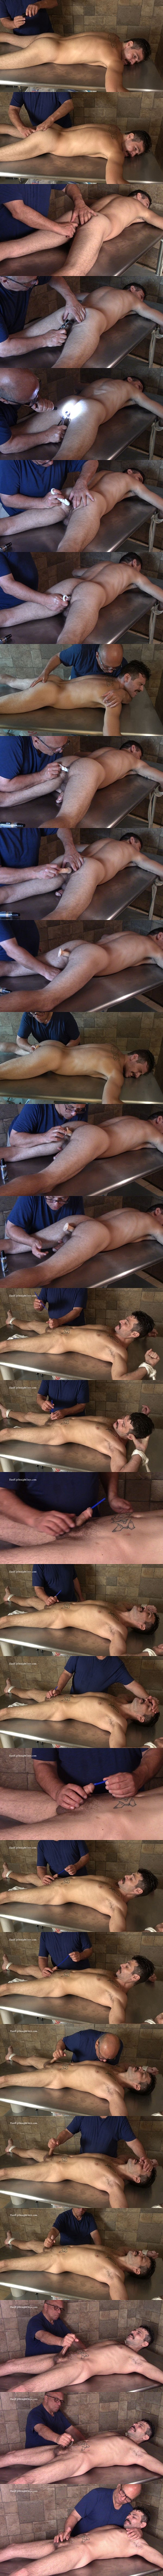 Manly straight hunk Nick gets fingered, buttpluged, dildo-fucked, sounding and slowly edged by master Rich before Rich jerks Nick off in A Straight Guy's Biggest Fears at Hardupstraightguys 01